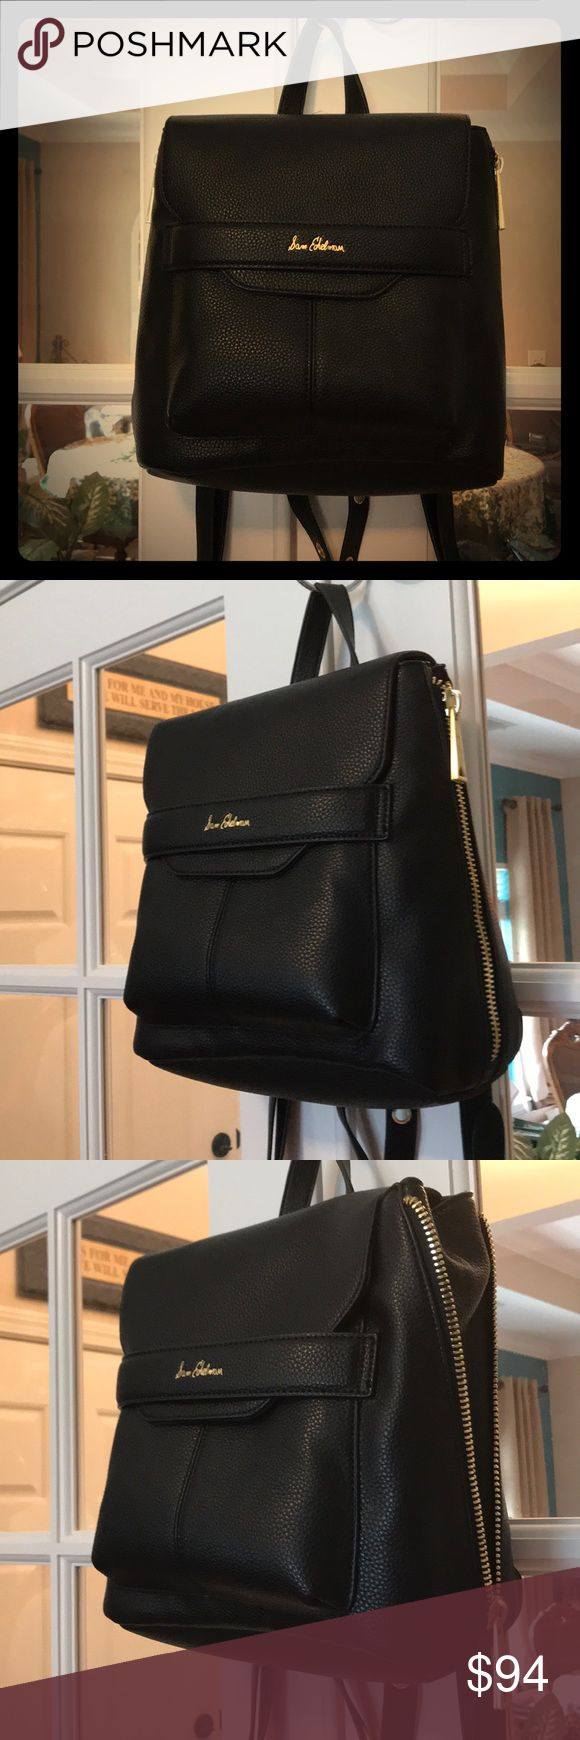 """🆕 Sam Edelman Black Pebbled Leather Backpack JUST IN‼️- This black Sam Edelman backpack is made of soft, pebbled leather.  Under the flap, the main compartment has a zippered pocket and large slip pocket.  There is also a front slip pocket under the flap and a wide zippered pocket on the rear of the bag.   Both sides of the bag can unzip to allow for expansion if needed!    Roughly 9.5""""L x 9.5""""W x 5.5""""H.   💞 Sam Edelman Bags Backpacks"""